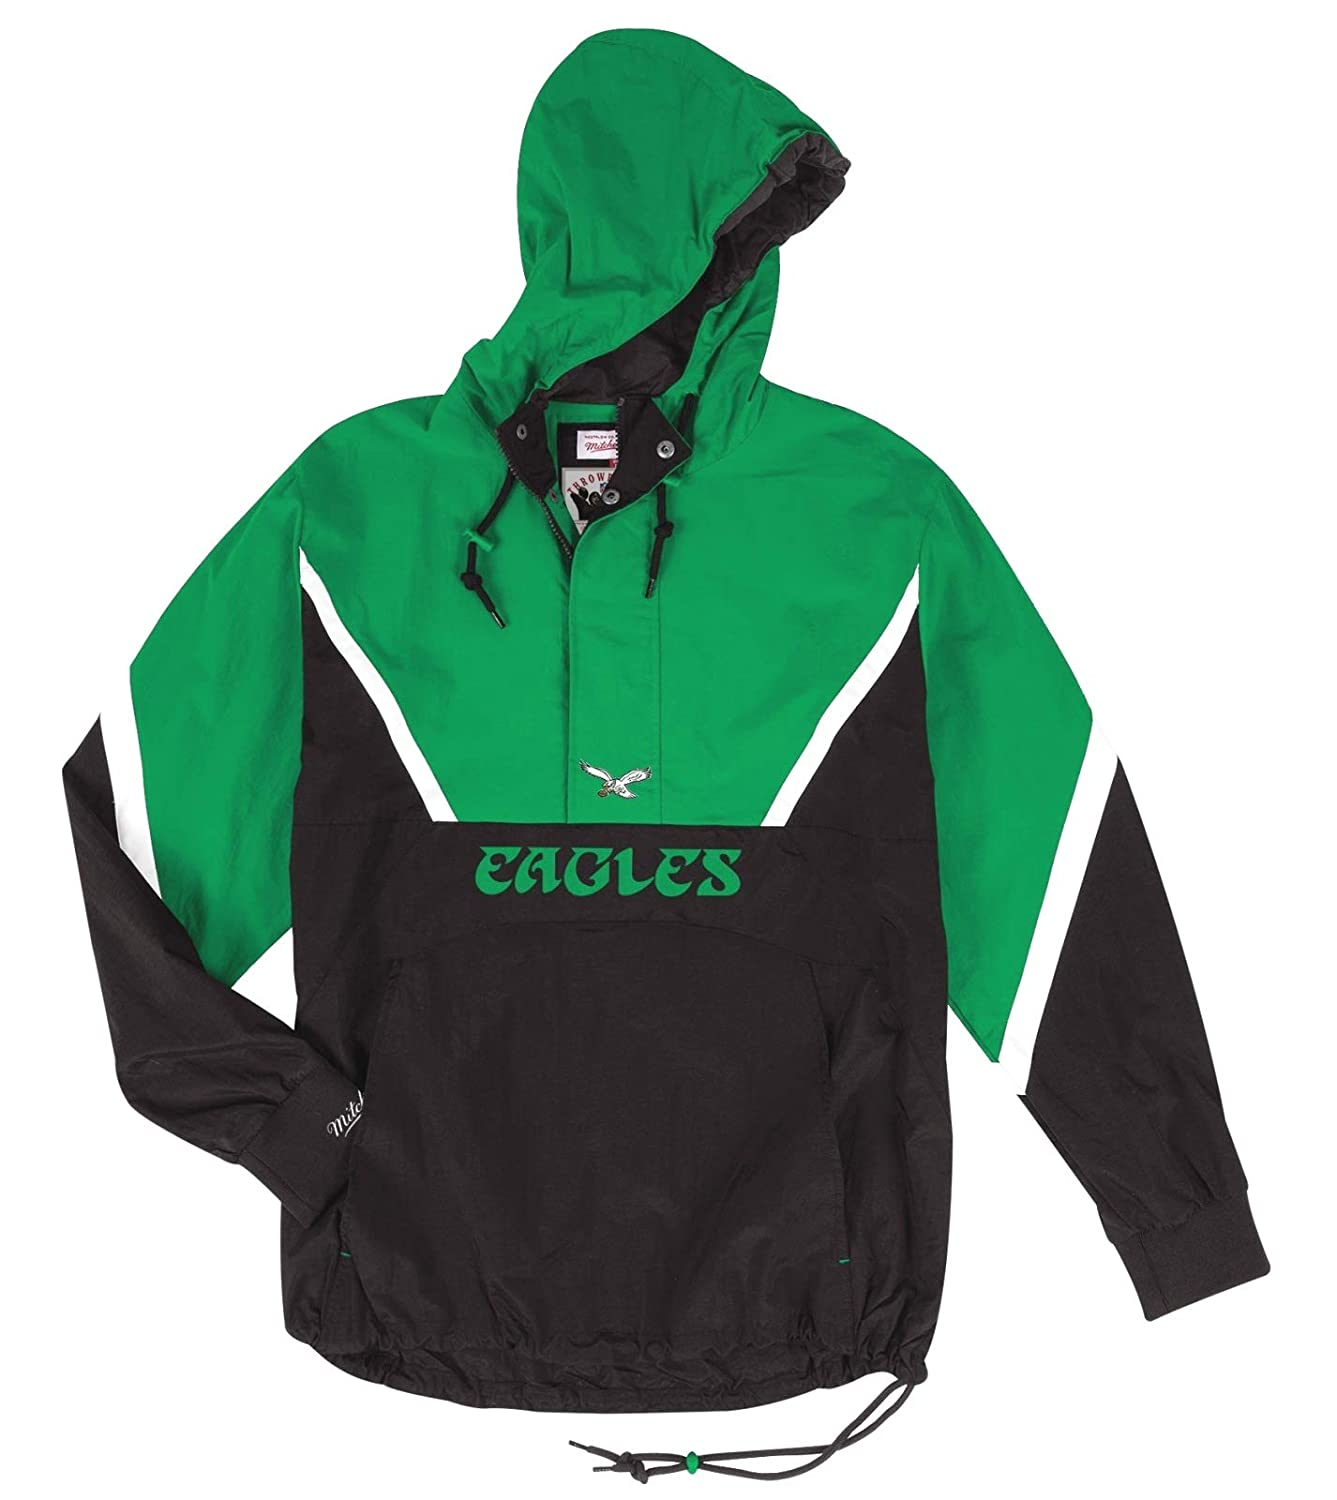 a744af5556f Mitchell ness philadelphia eagles mens anorak zip pullover jacket sports  outdoors jpg 1337x1500 Mitchell eagles jacket